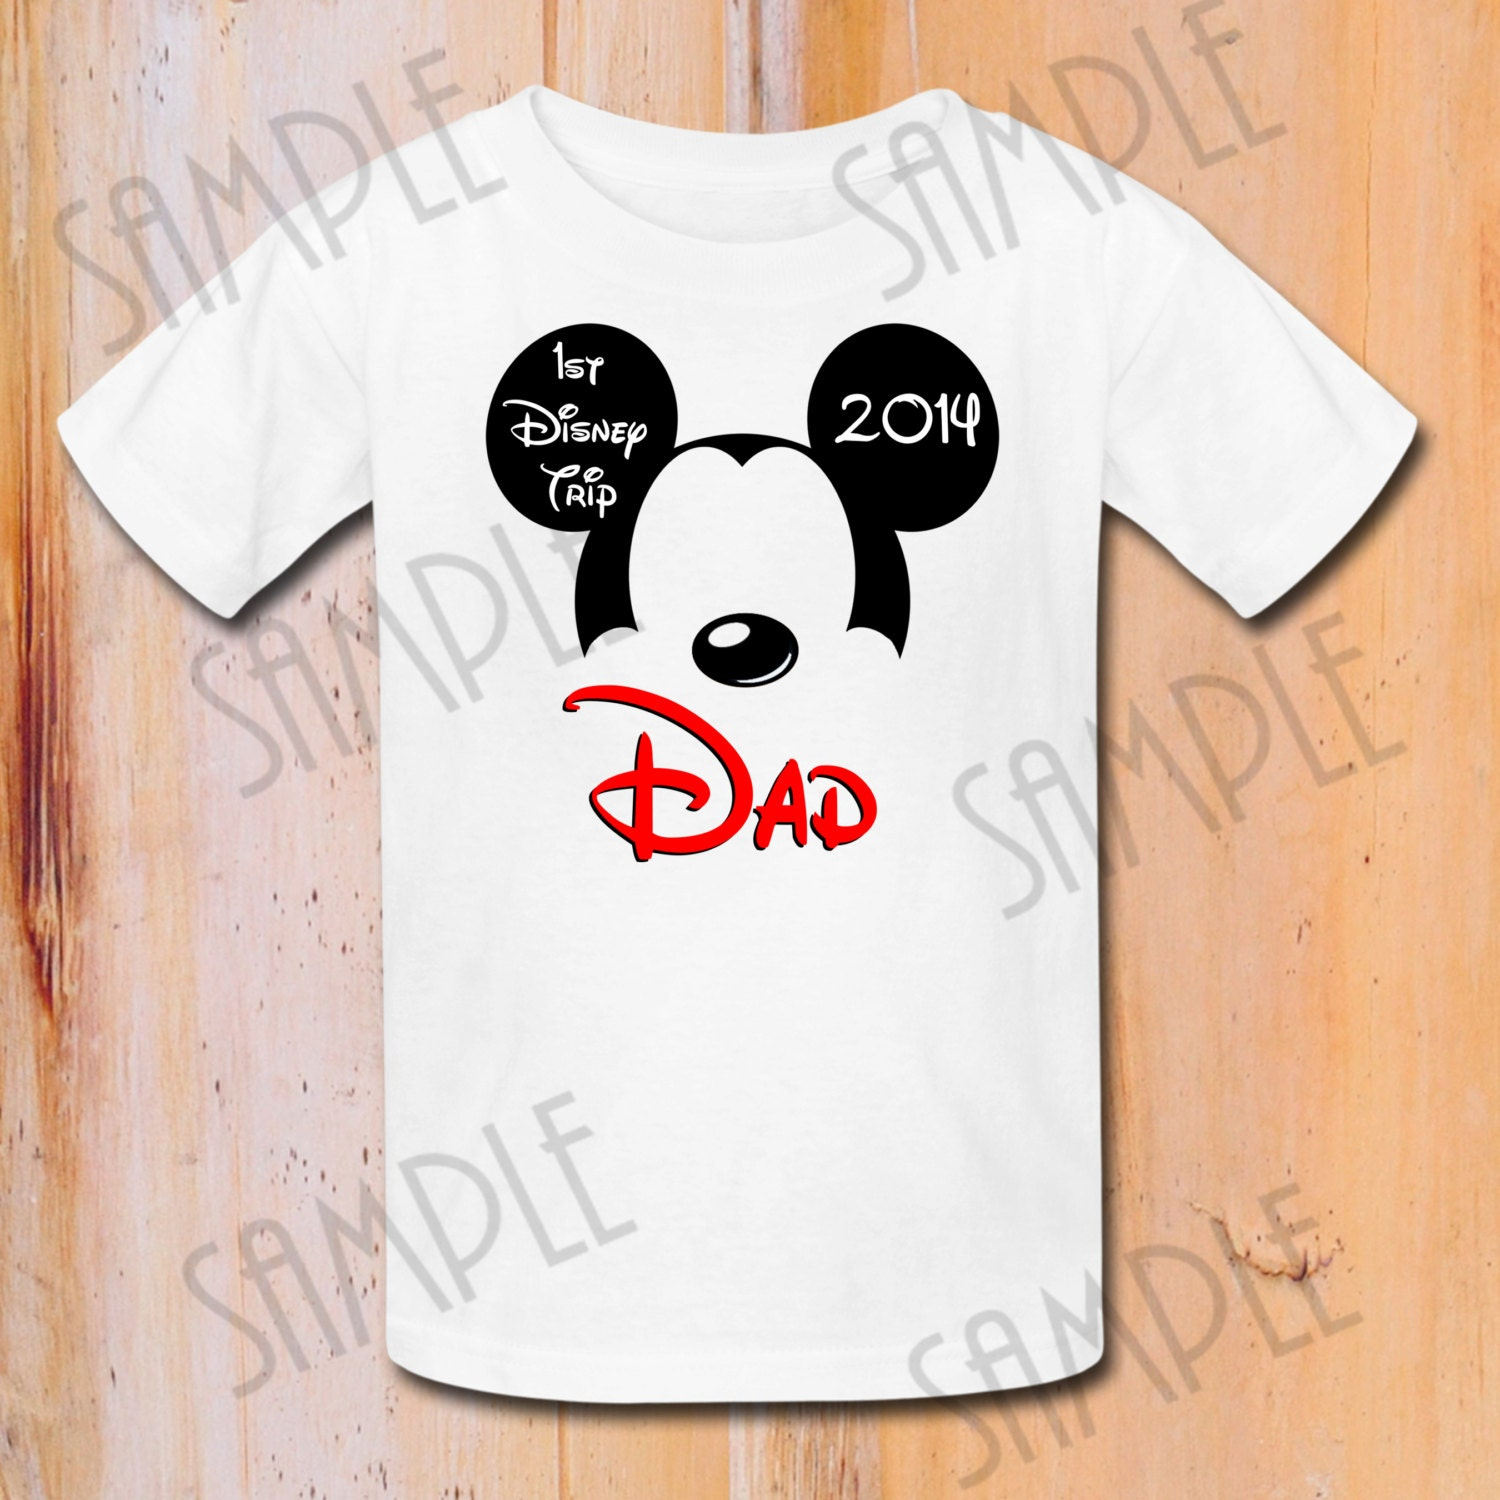 Disney family vacation t shirts iron on transfer printable dad for Custom t shirts family vacation